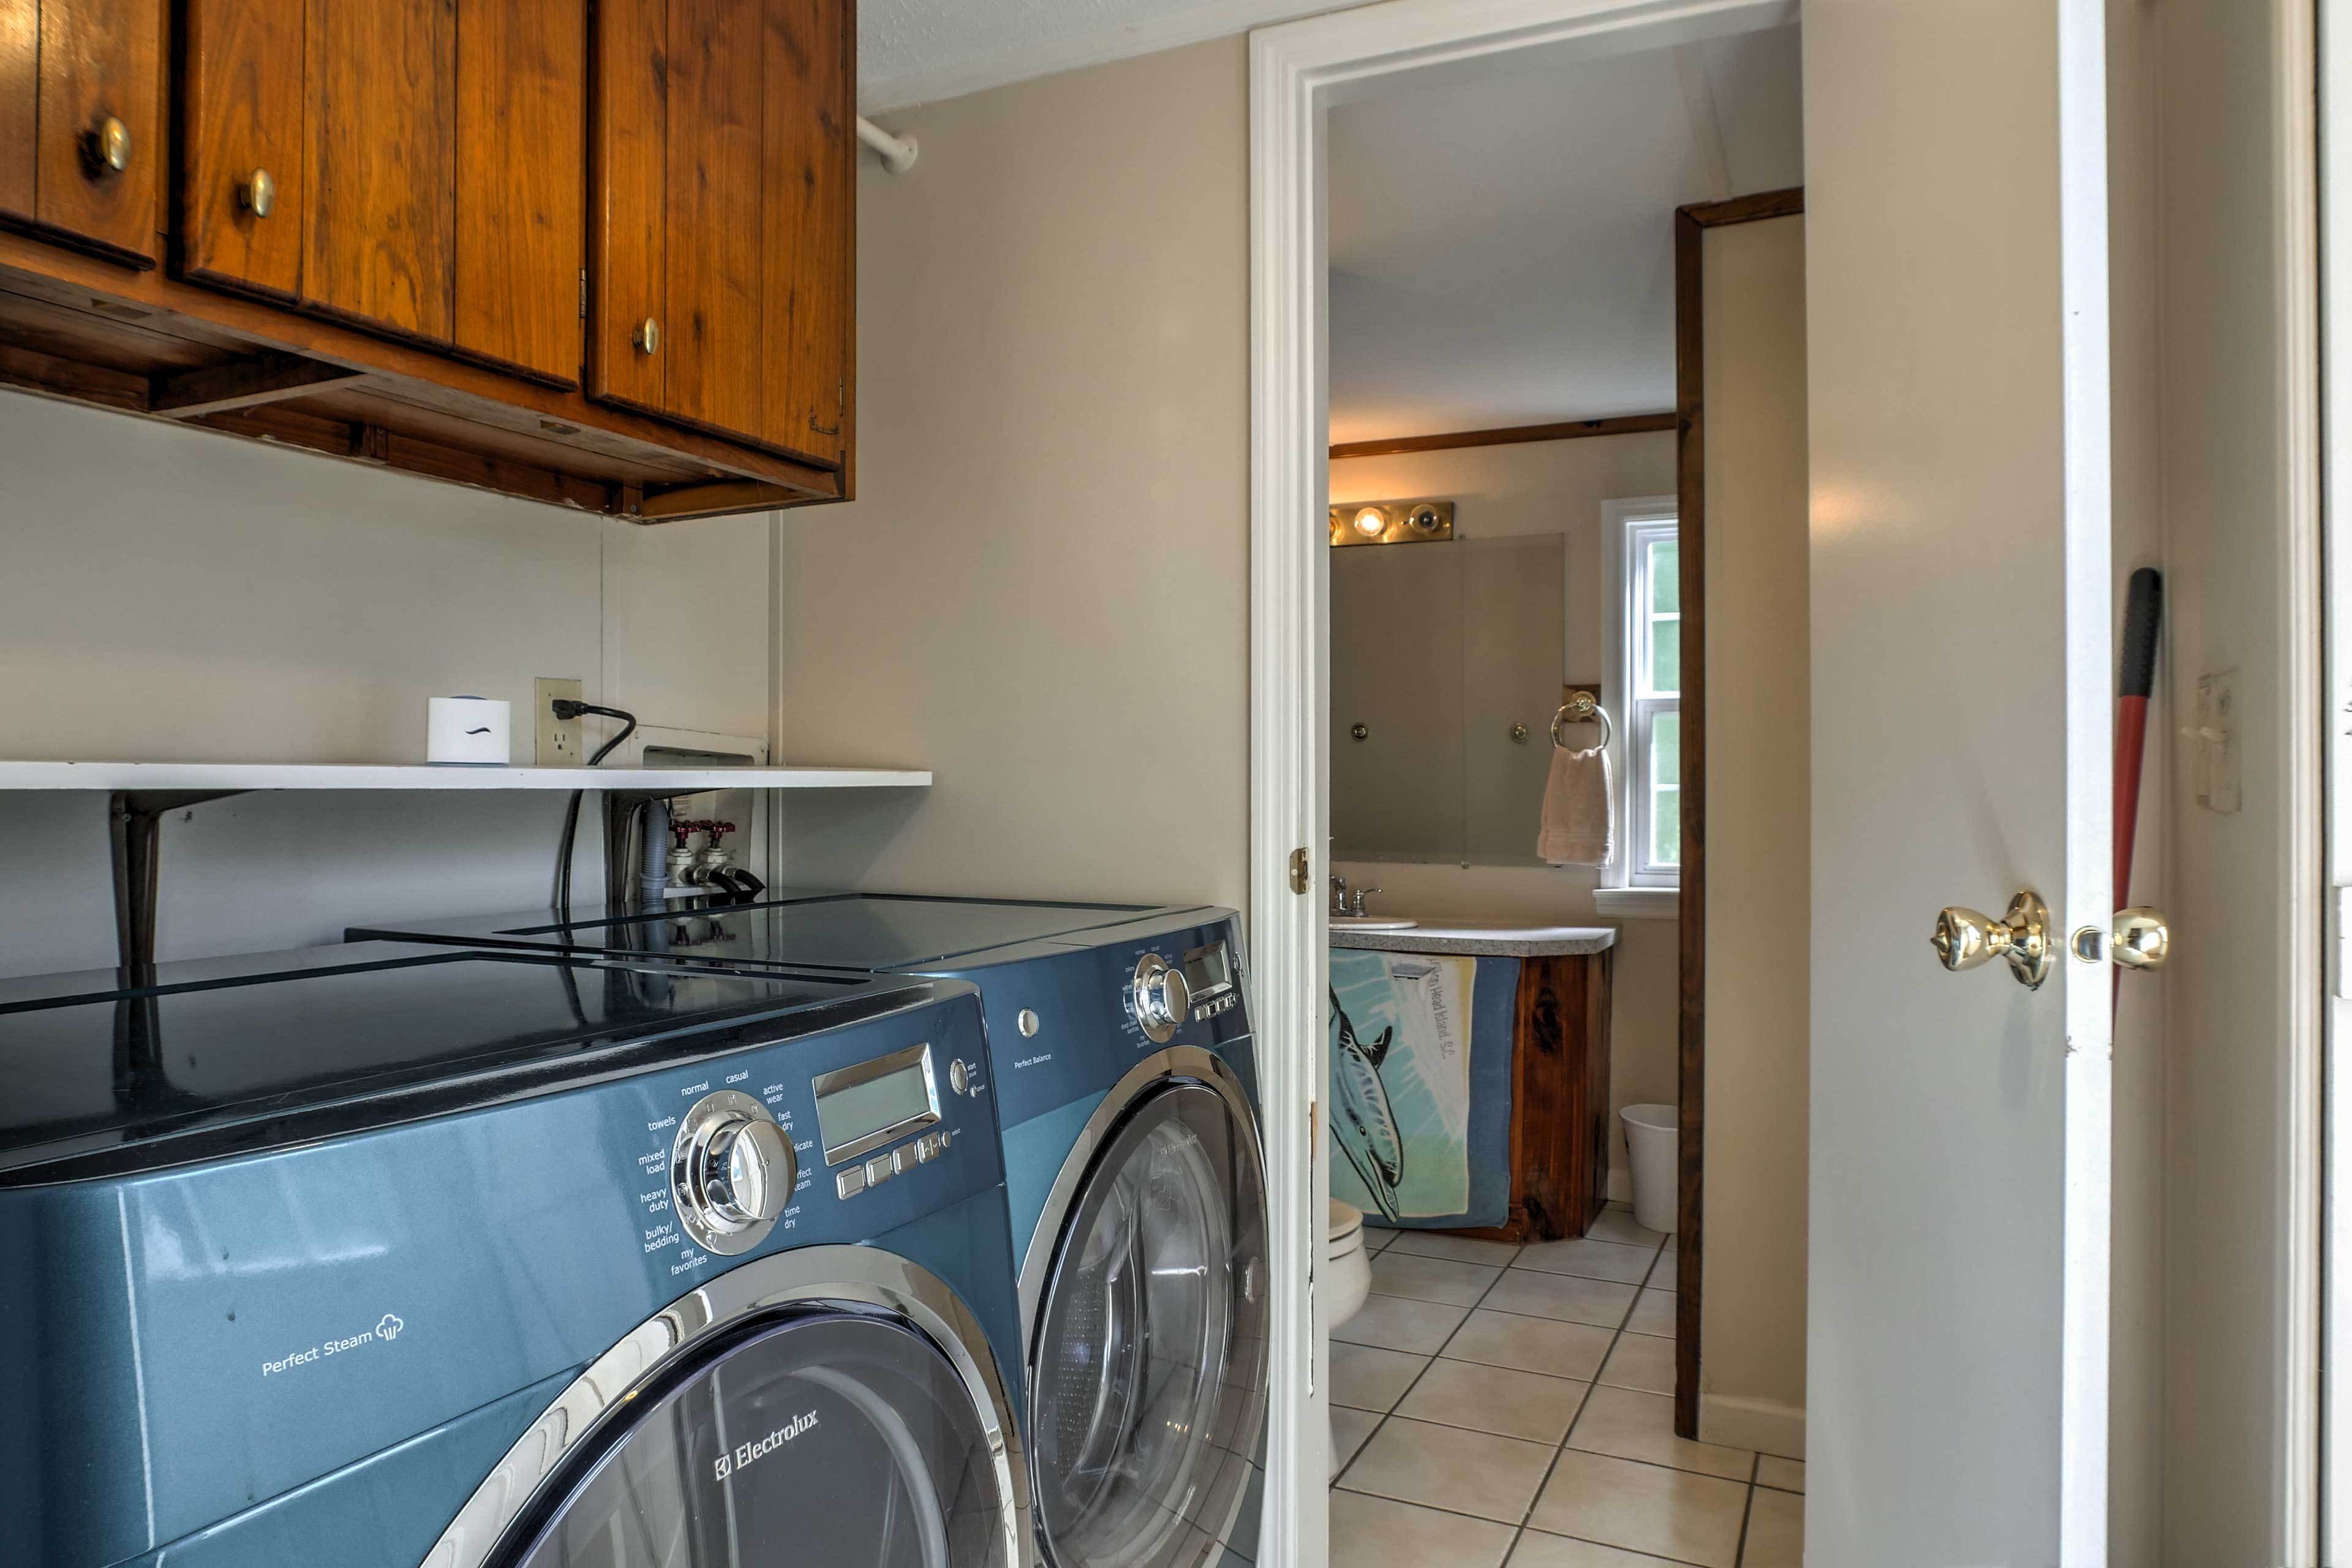 Keeping your clothes fresh will be a breeze with the washer and dryer!